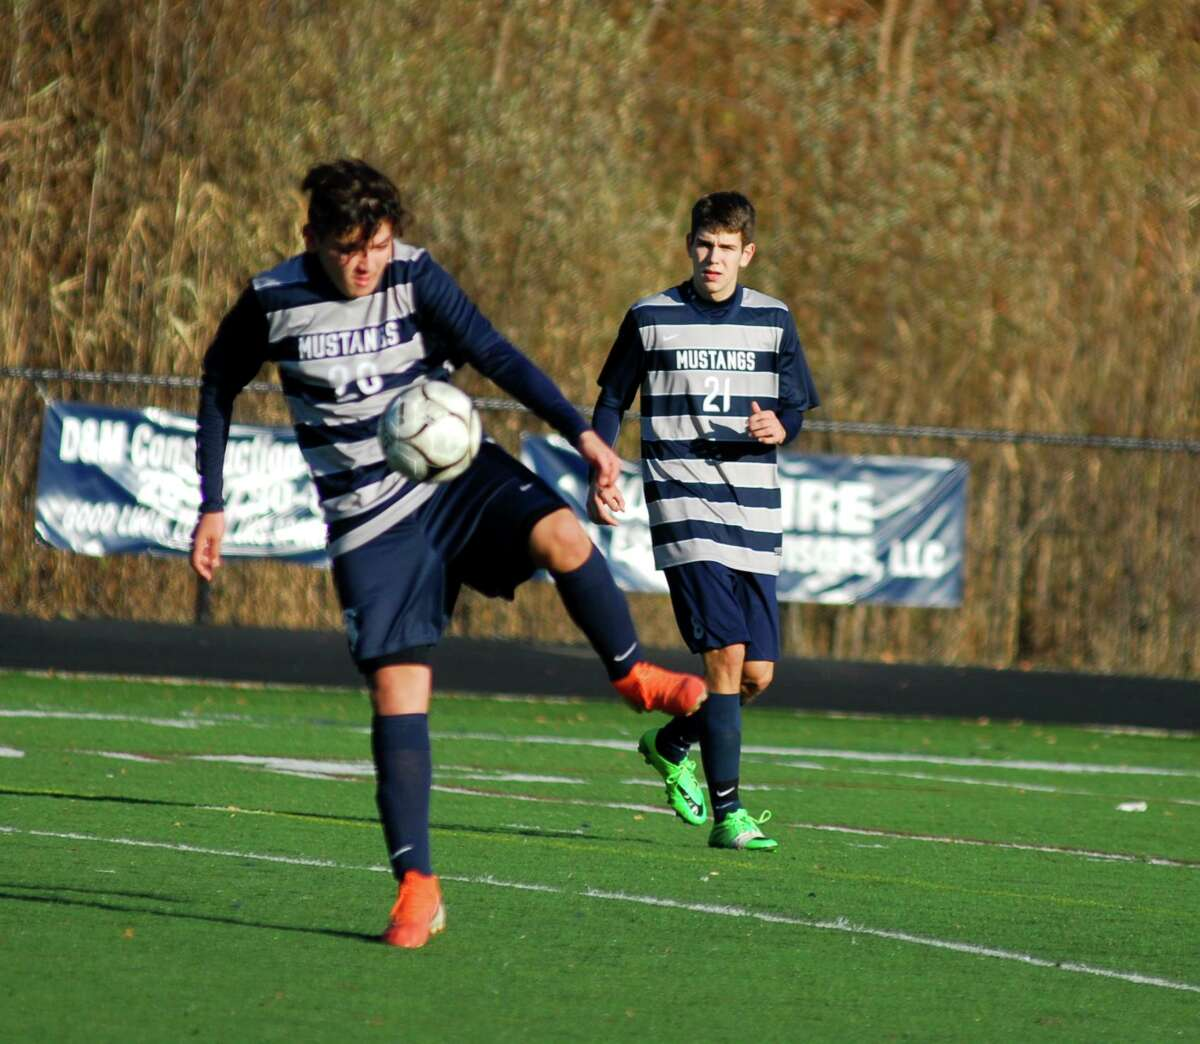 The Immaculate boys soccer team beat Old Lyme 2-0 in the Class S quarterfinals on Friday.